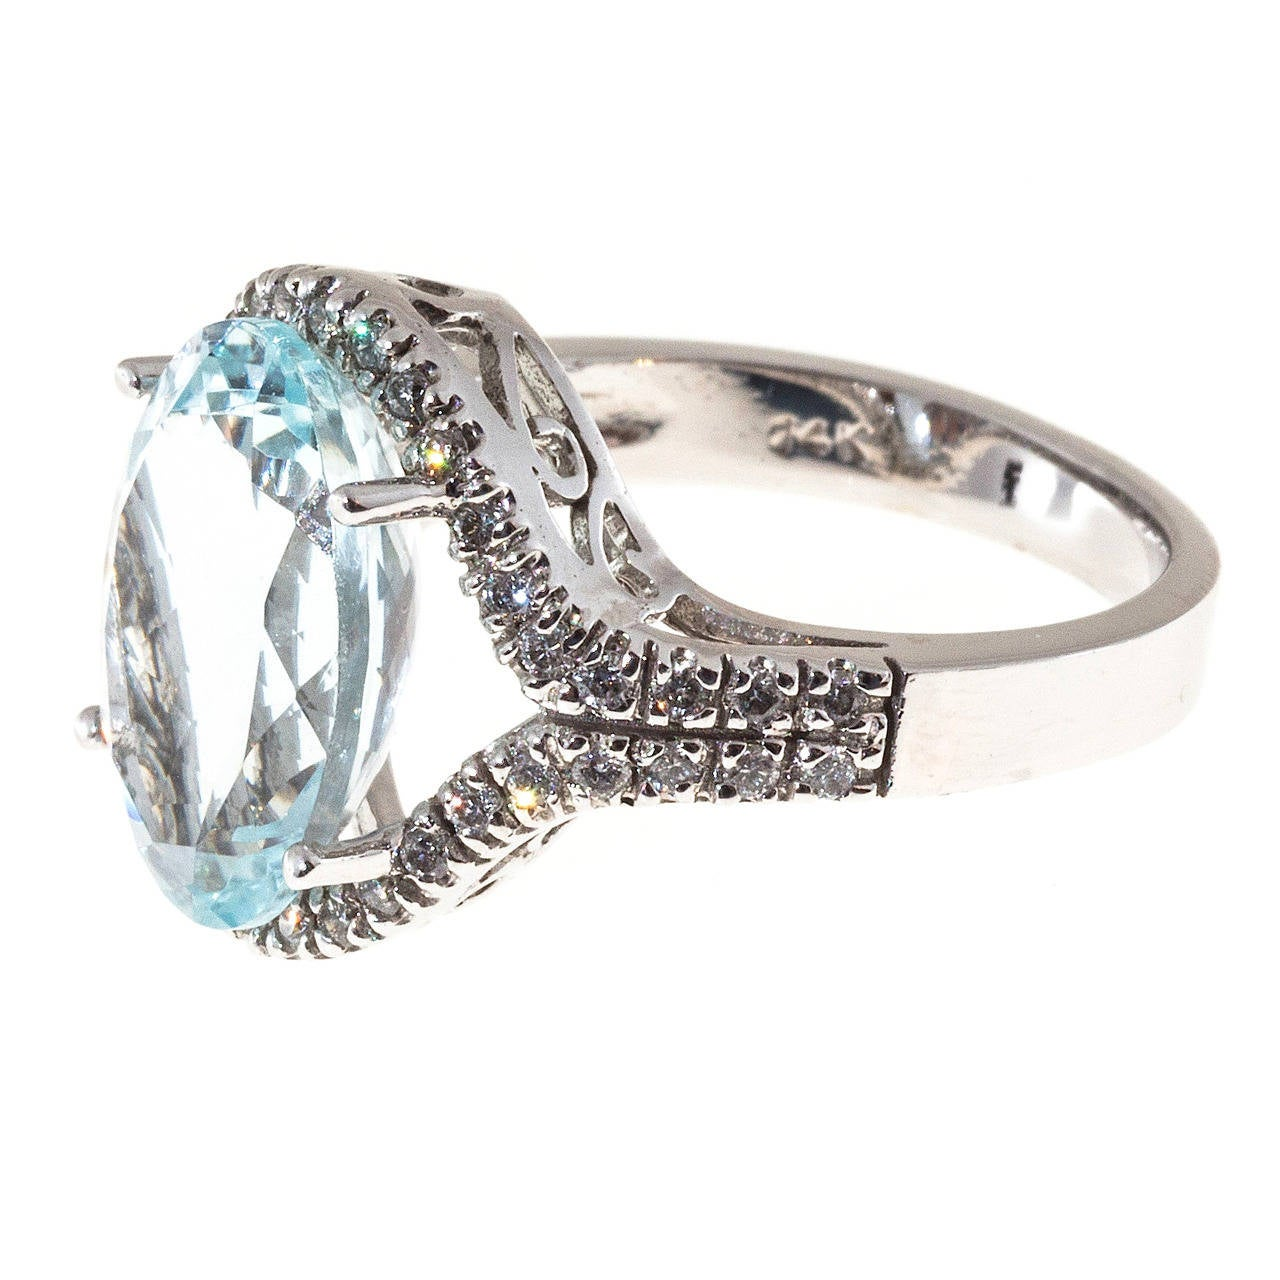 Bright slightly green, medium blue natural oval Aqua in a beautiful simple14k white gold diamond halo ring.  1 oval natural no heat bright light blue oval Aqua 14 x 10mm, approx. total weight 6.75cts 42 full cut diamonds, approx. total weight